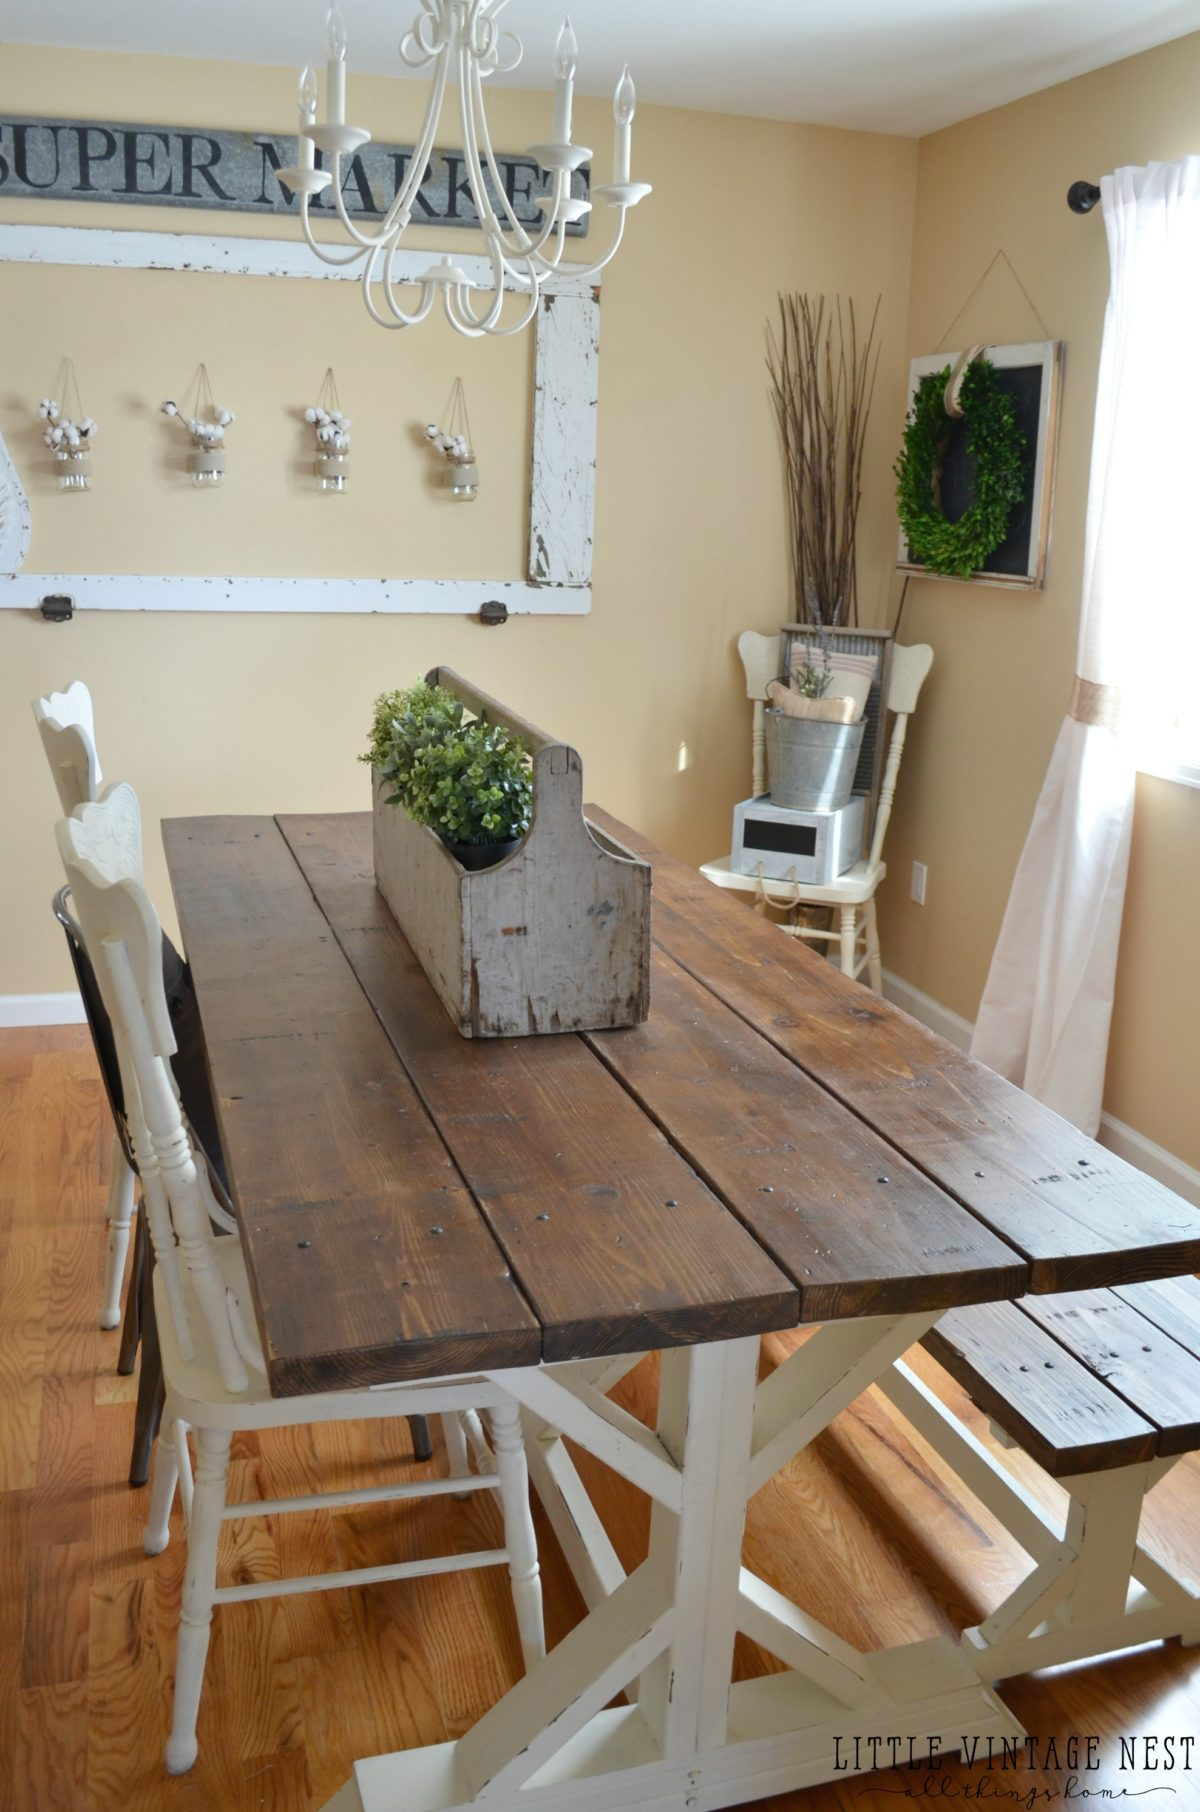 Farmhouse Dining Room Tables modern farmhouse dining room makeover - little vintage nest